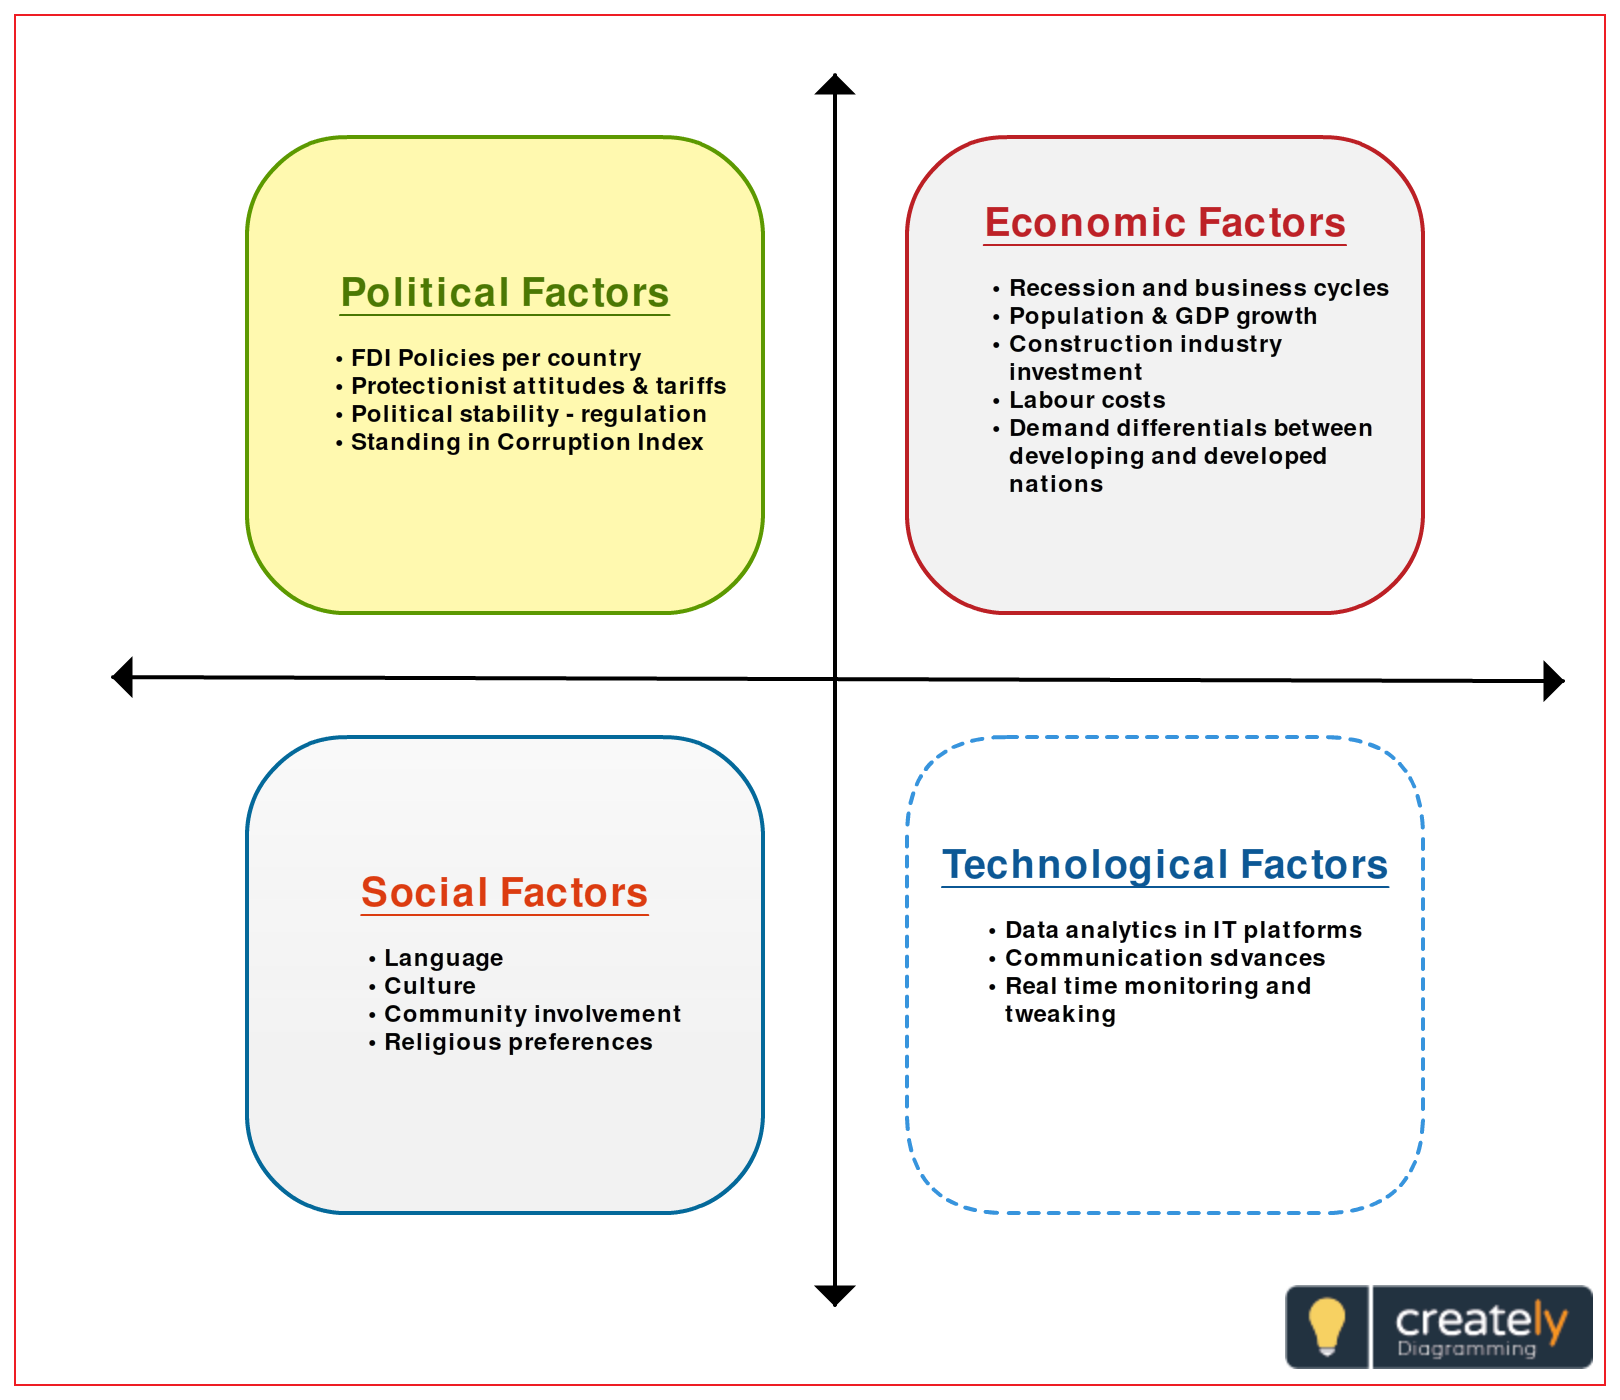 Analysis of economic factors in a business